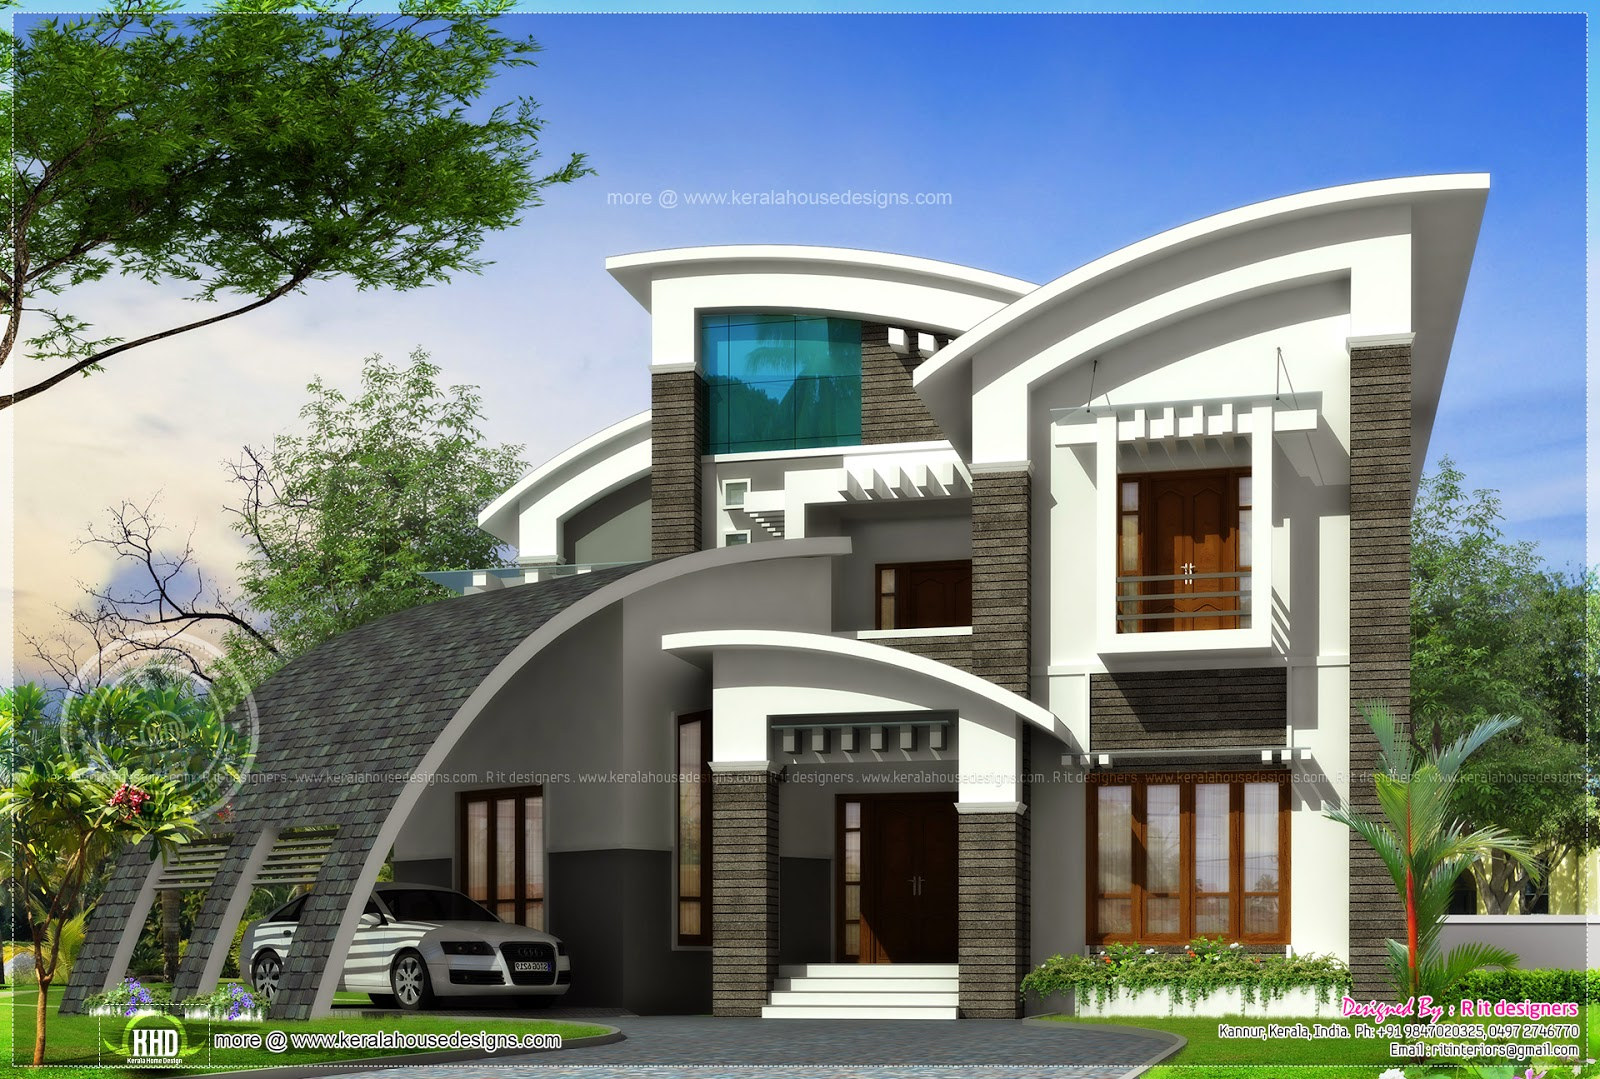 Super luxury ultra modern house design kerala home for Best contemporary house design